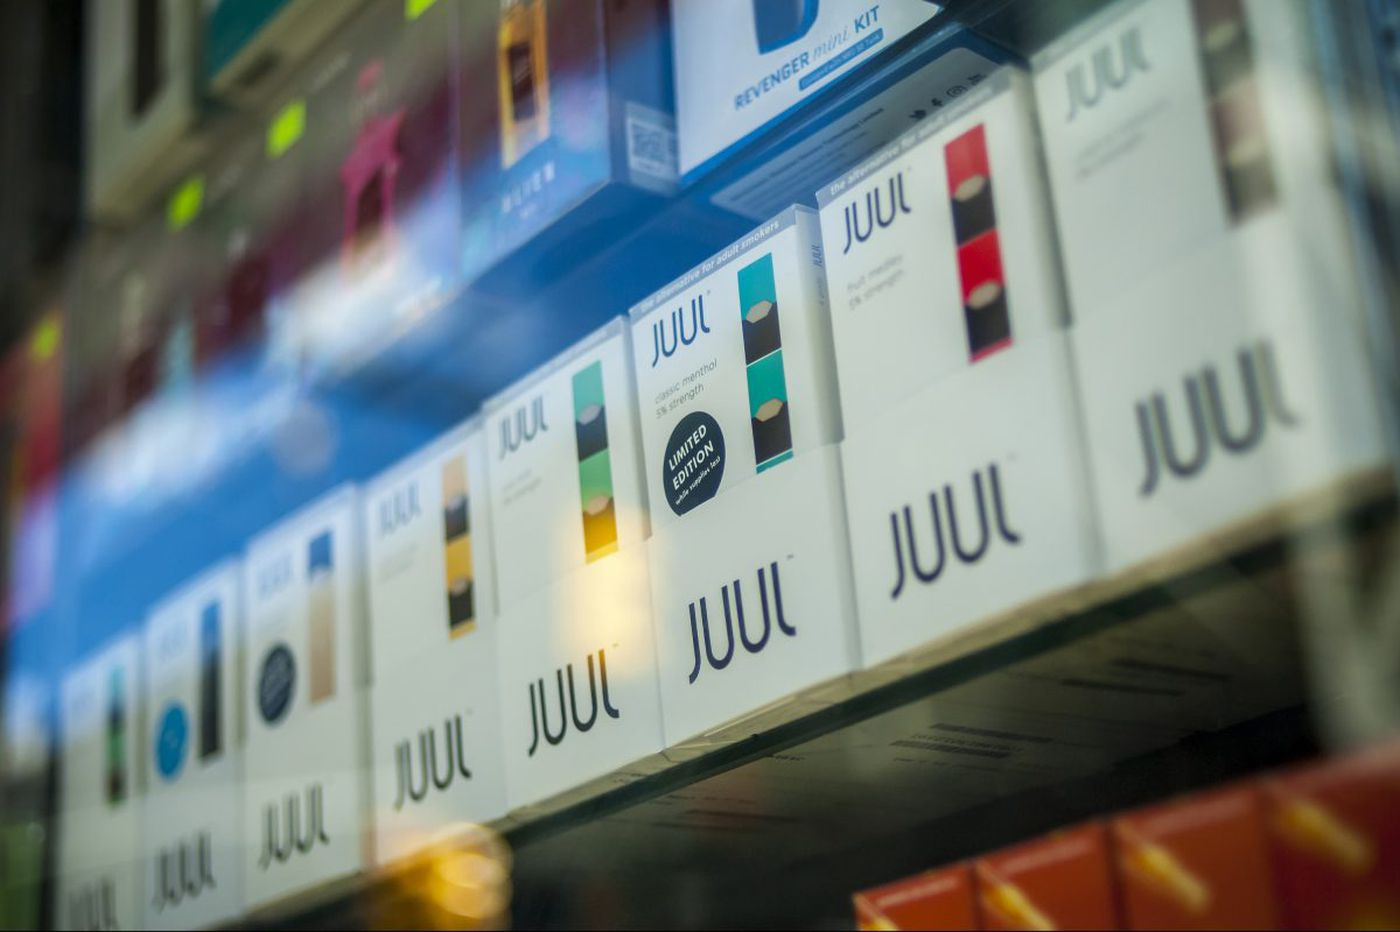 Juul and other e-cigarette sales to youths targeted by FDA in national crackdown